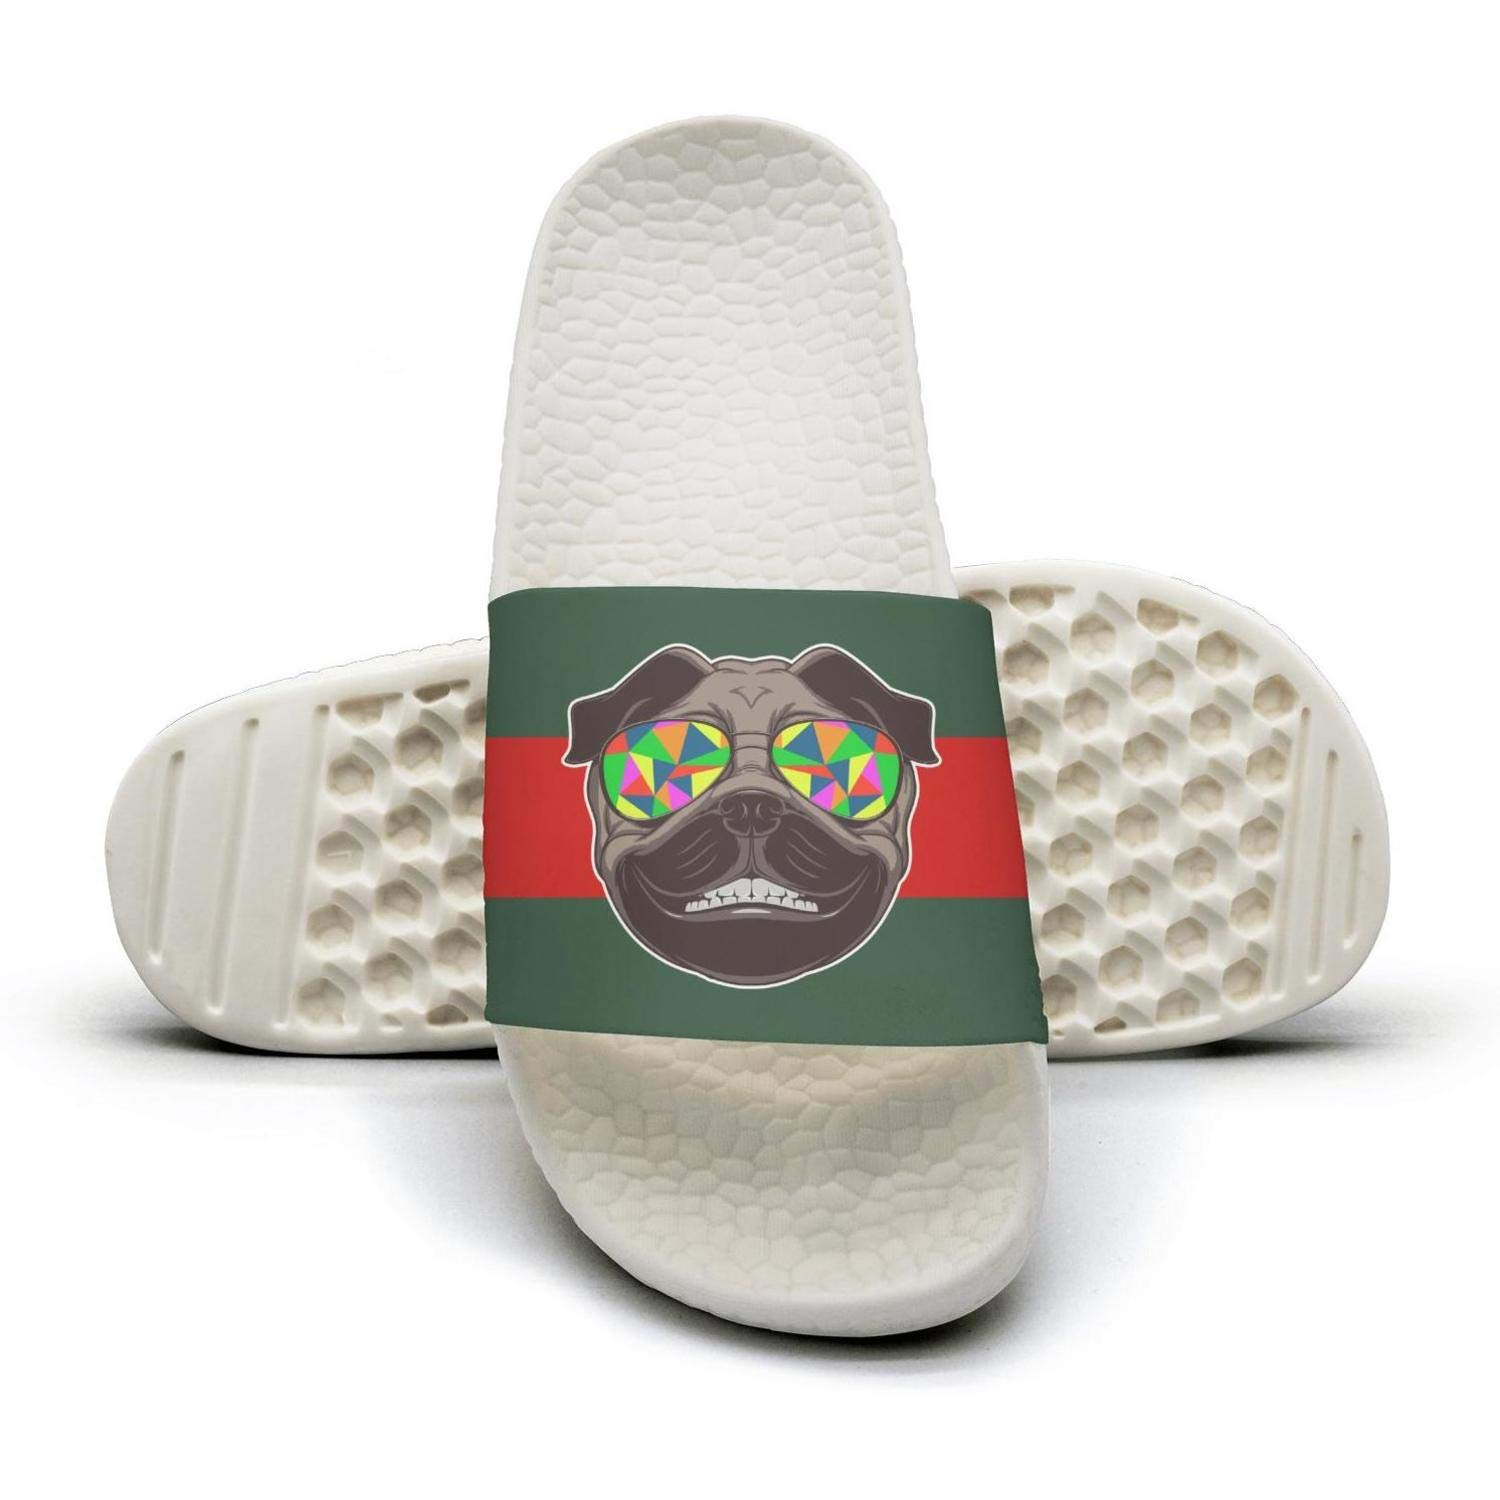 Woman pugs sunglasses pug dad red and green stripe flat Slipper Sandals lady Summer Sandals Slides